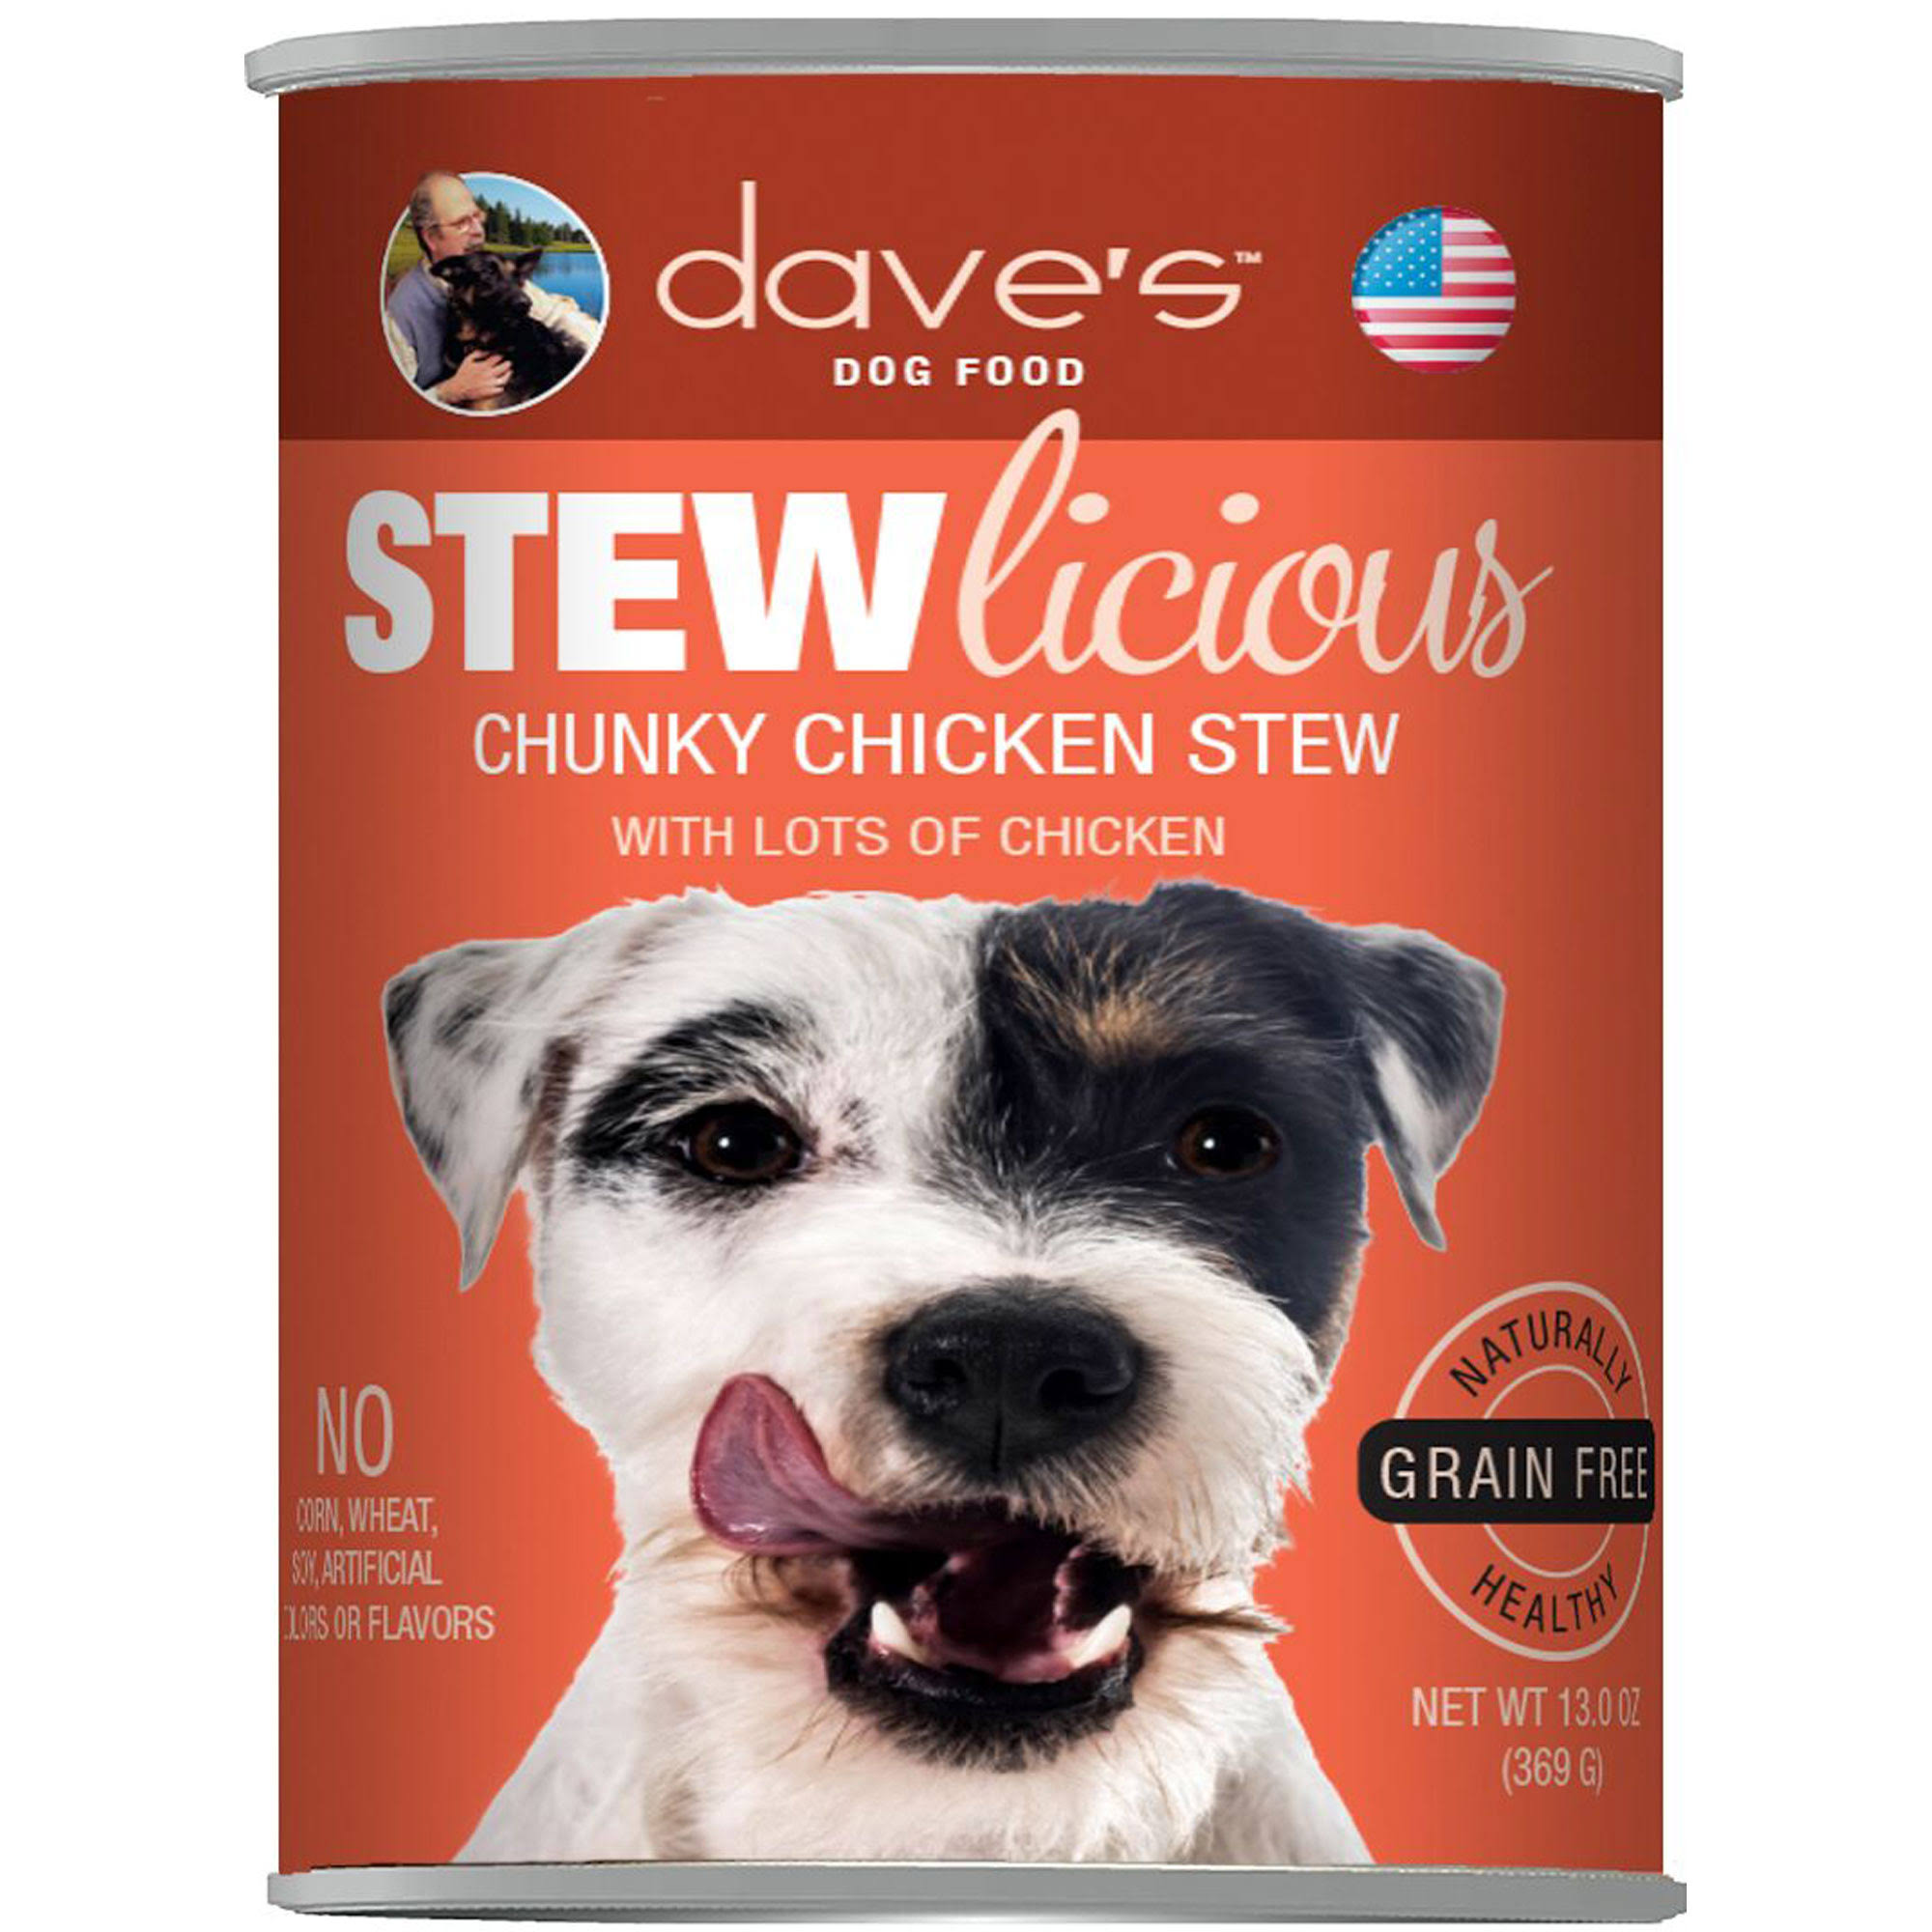 Dave's Stewlicious Chunky Chicken Stew Canned Dog Food - Can